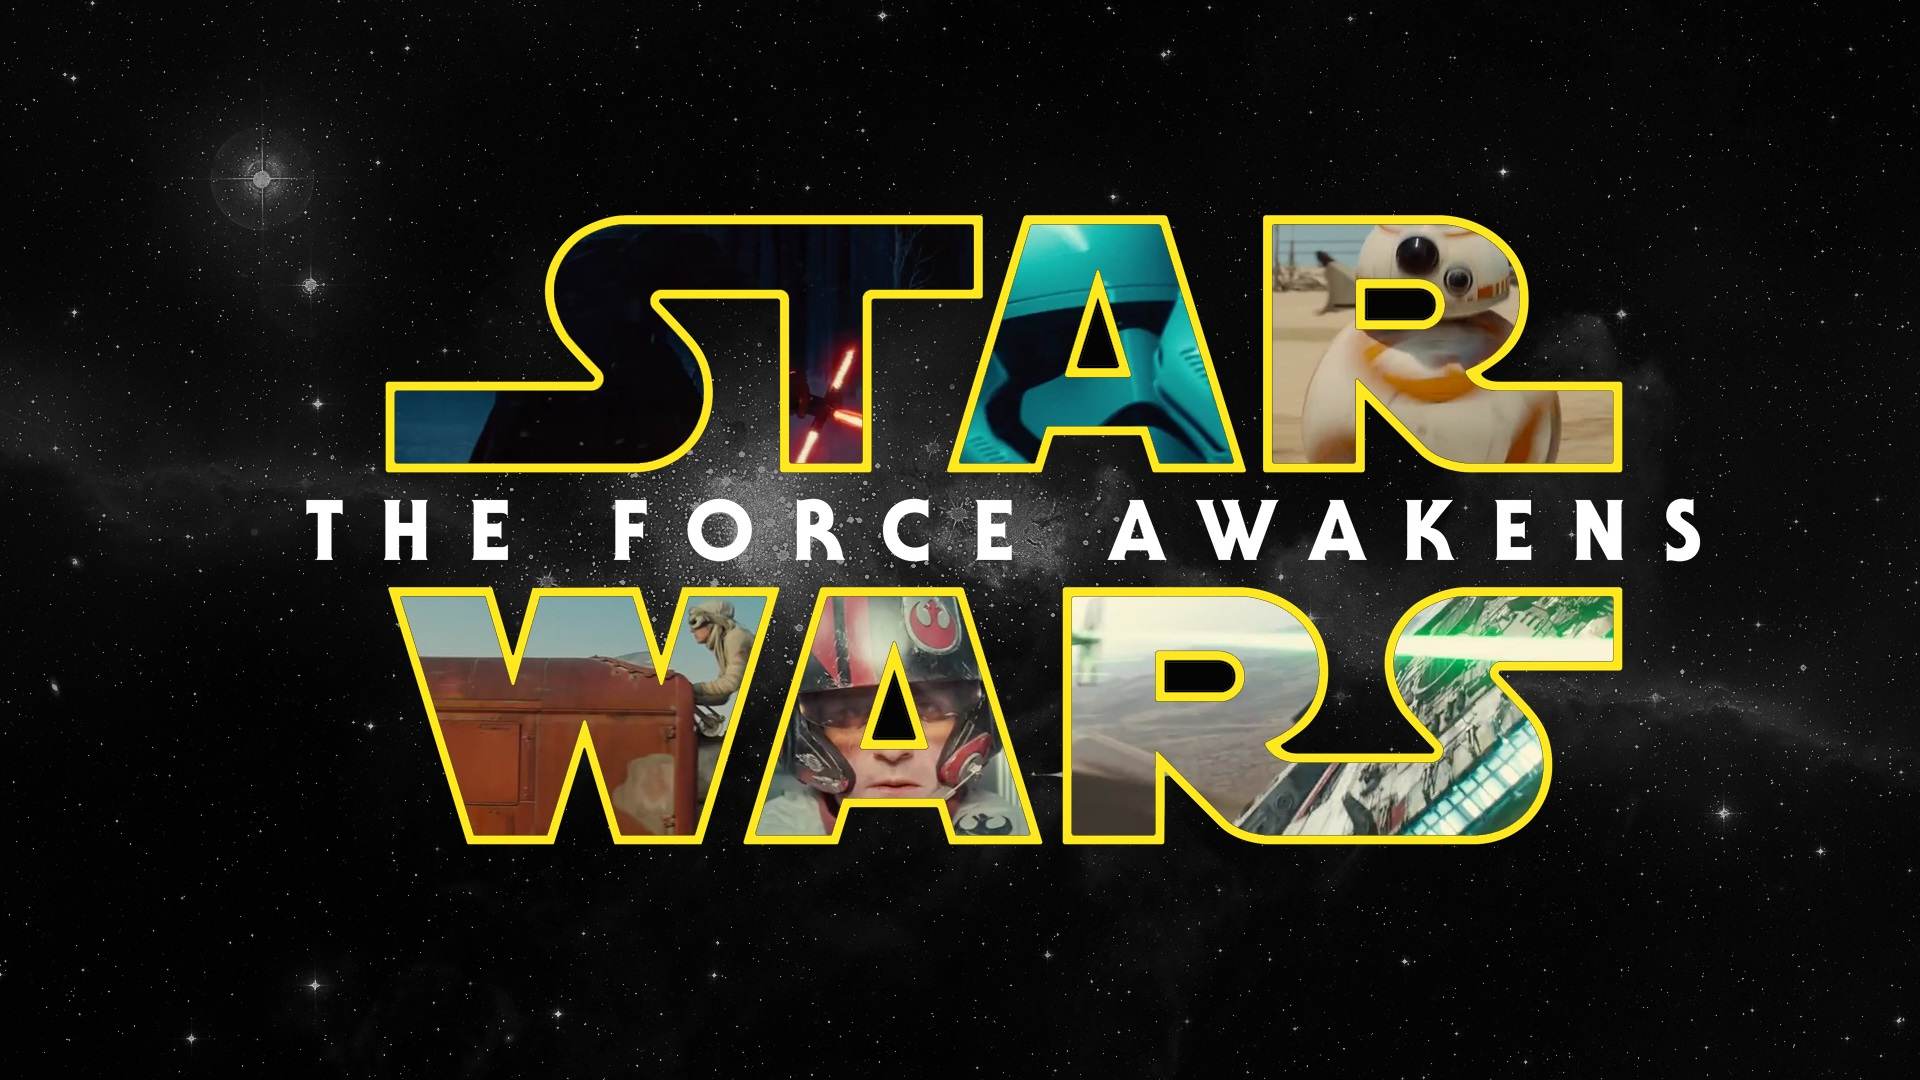 the saga of star wars back again with star wars the awakening of force 1920x1080